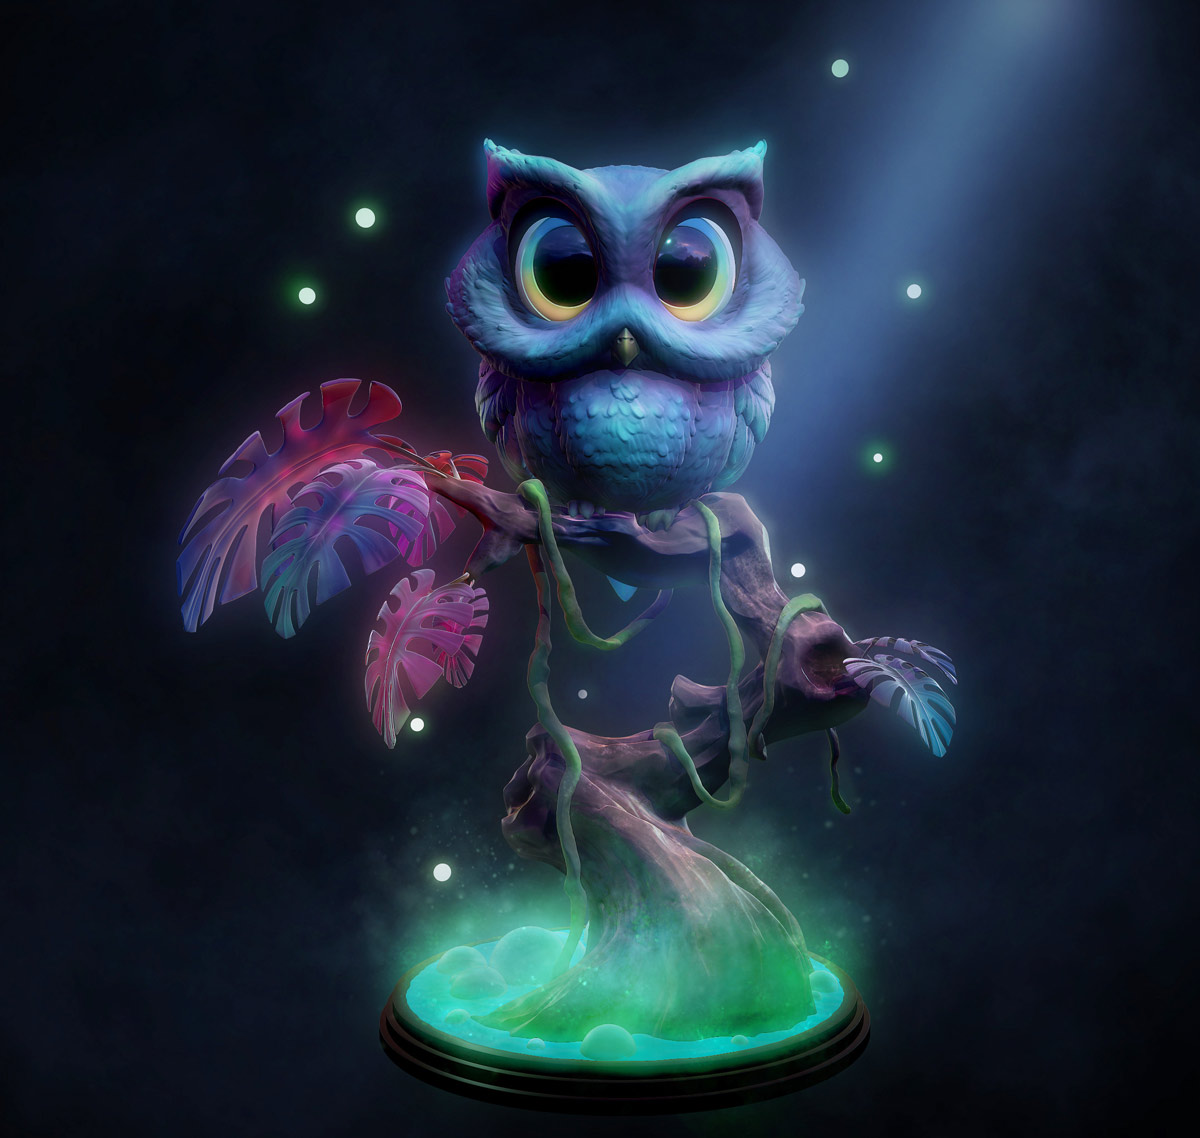 3d model character owl fantasy by michael mao